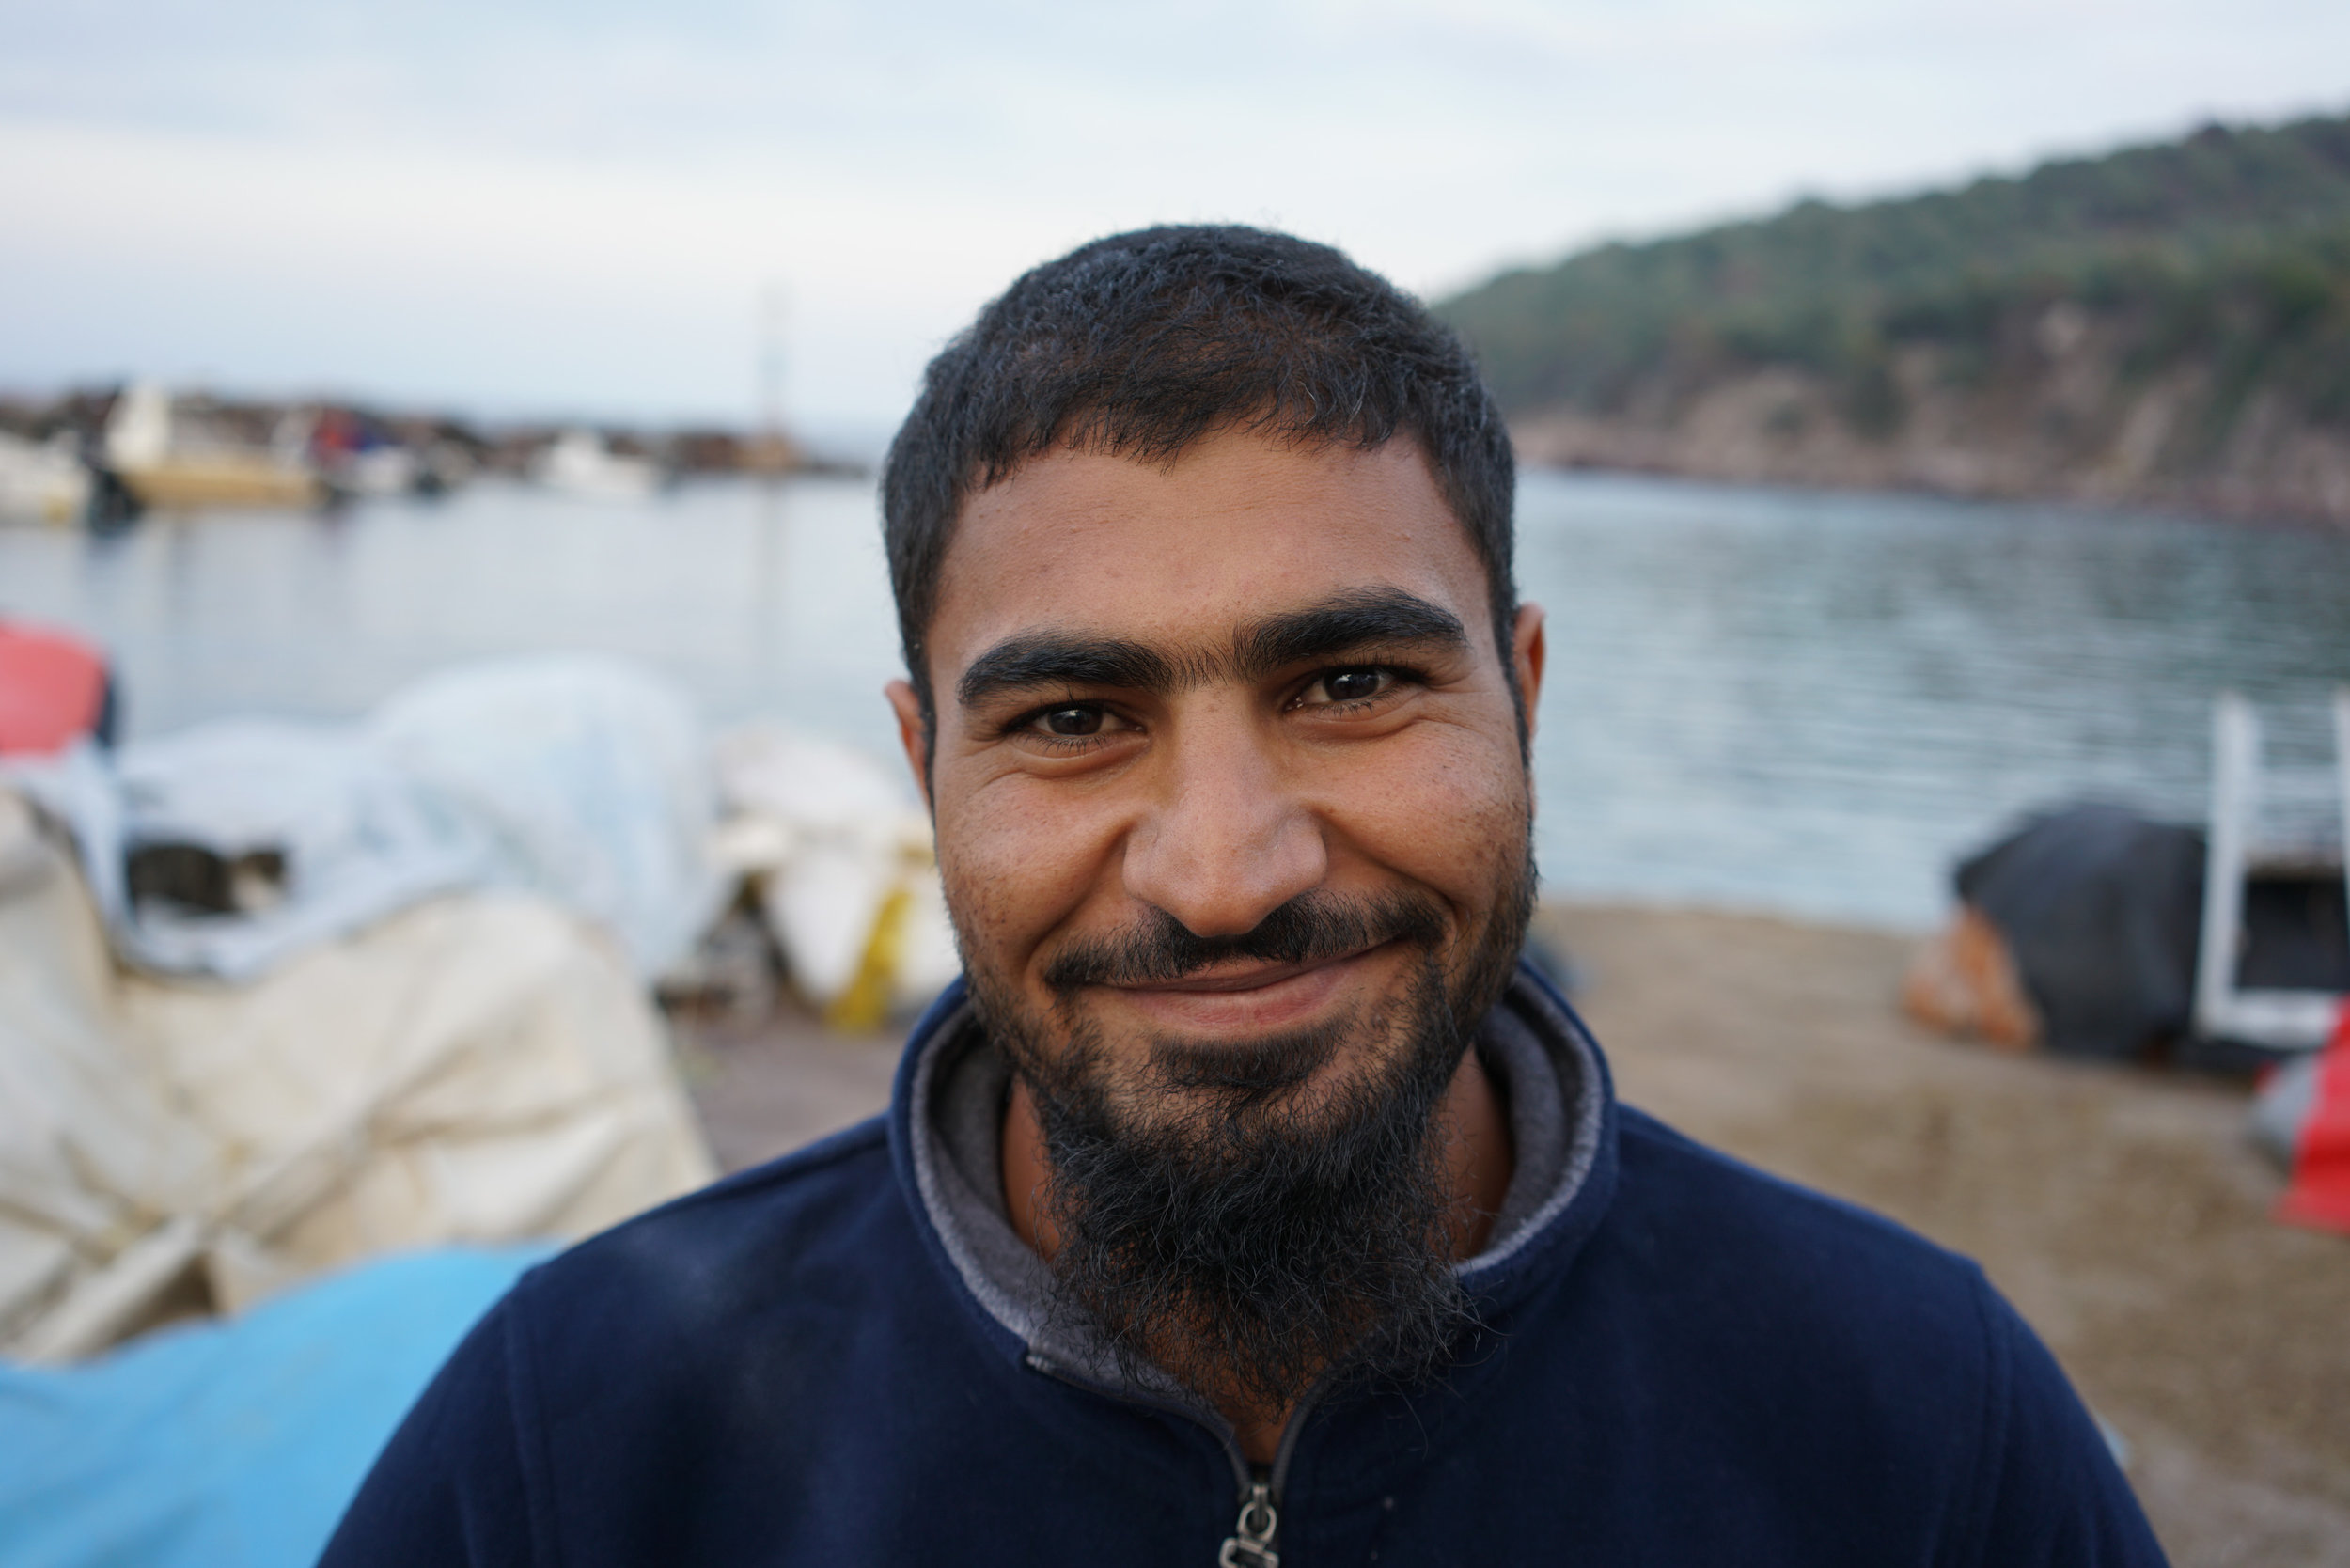 Adil, Skala Sikamineas, Greece. Photo: Talitha Brauer